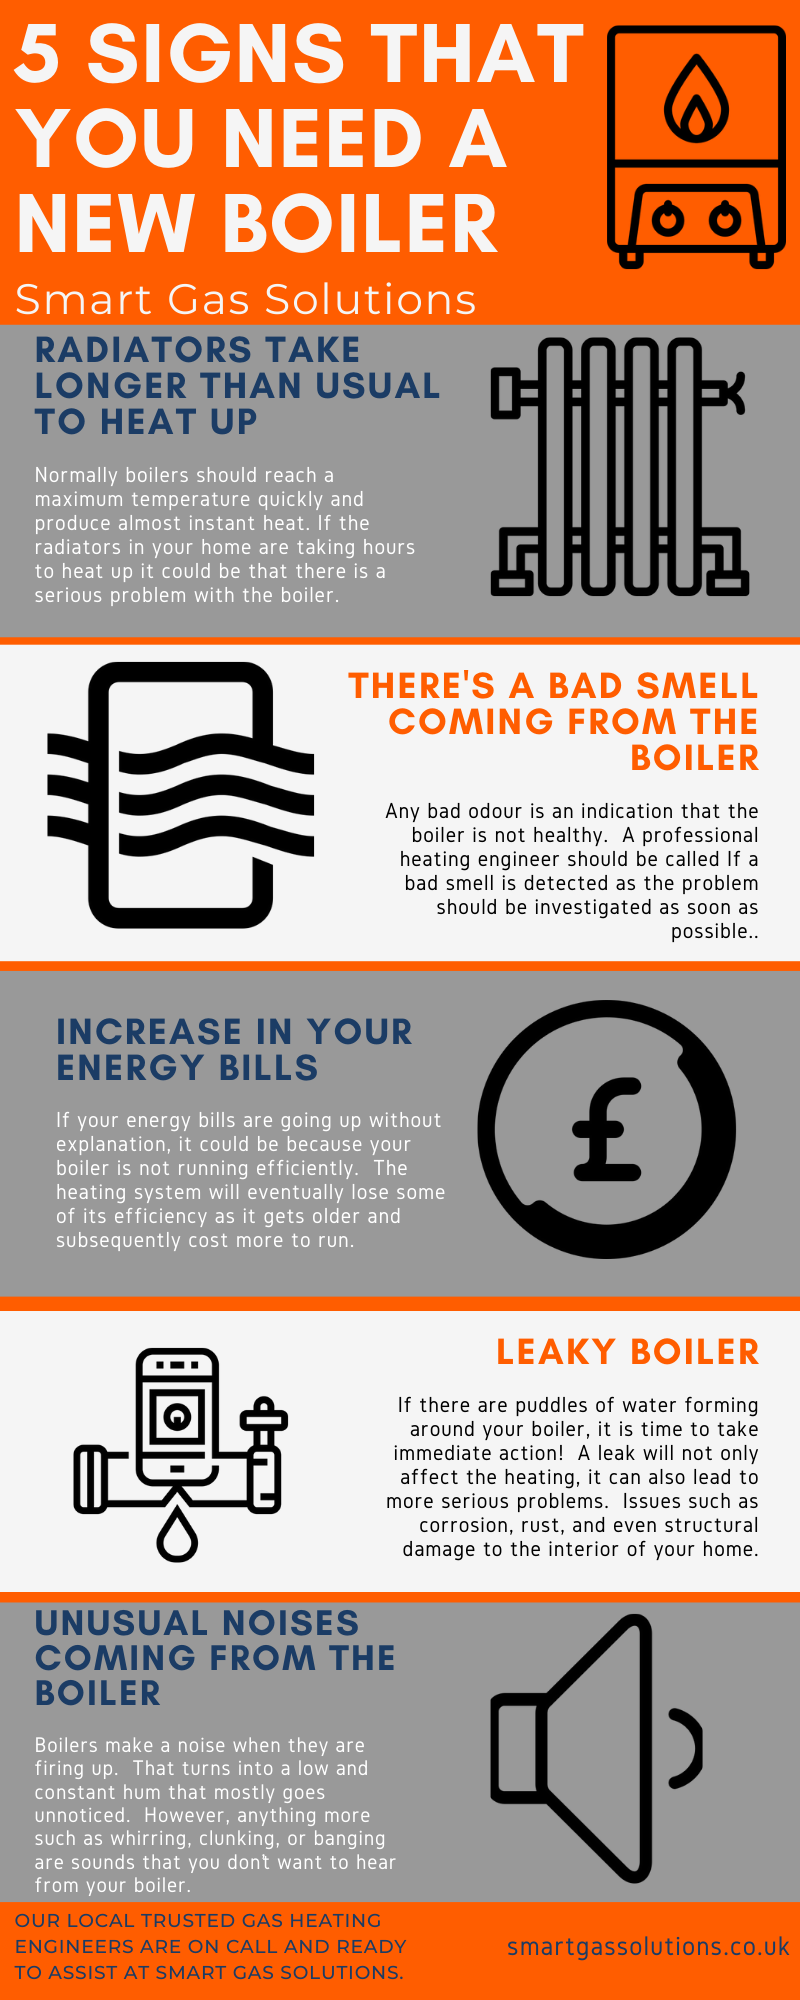 5 Signs Your Home May Need A New Boiler